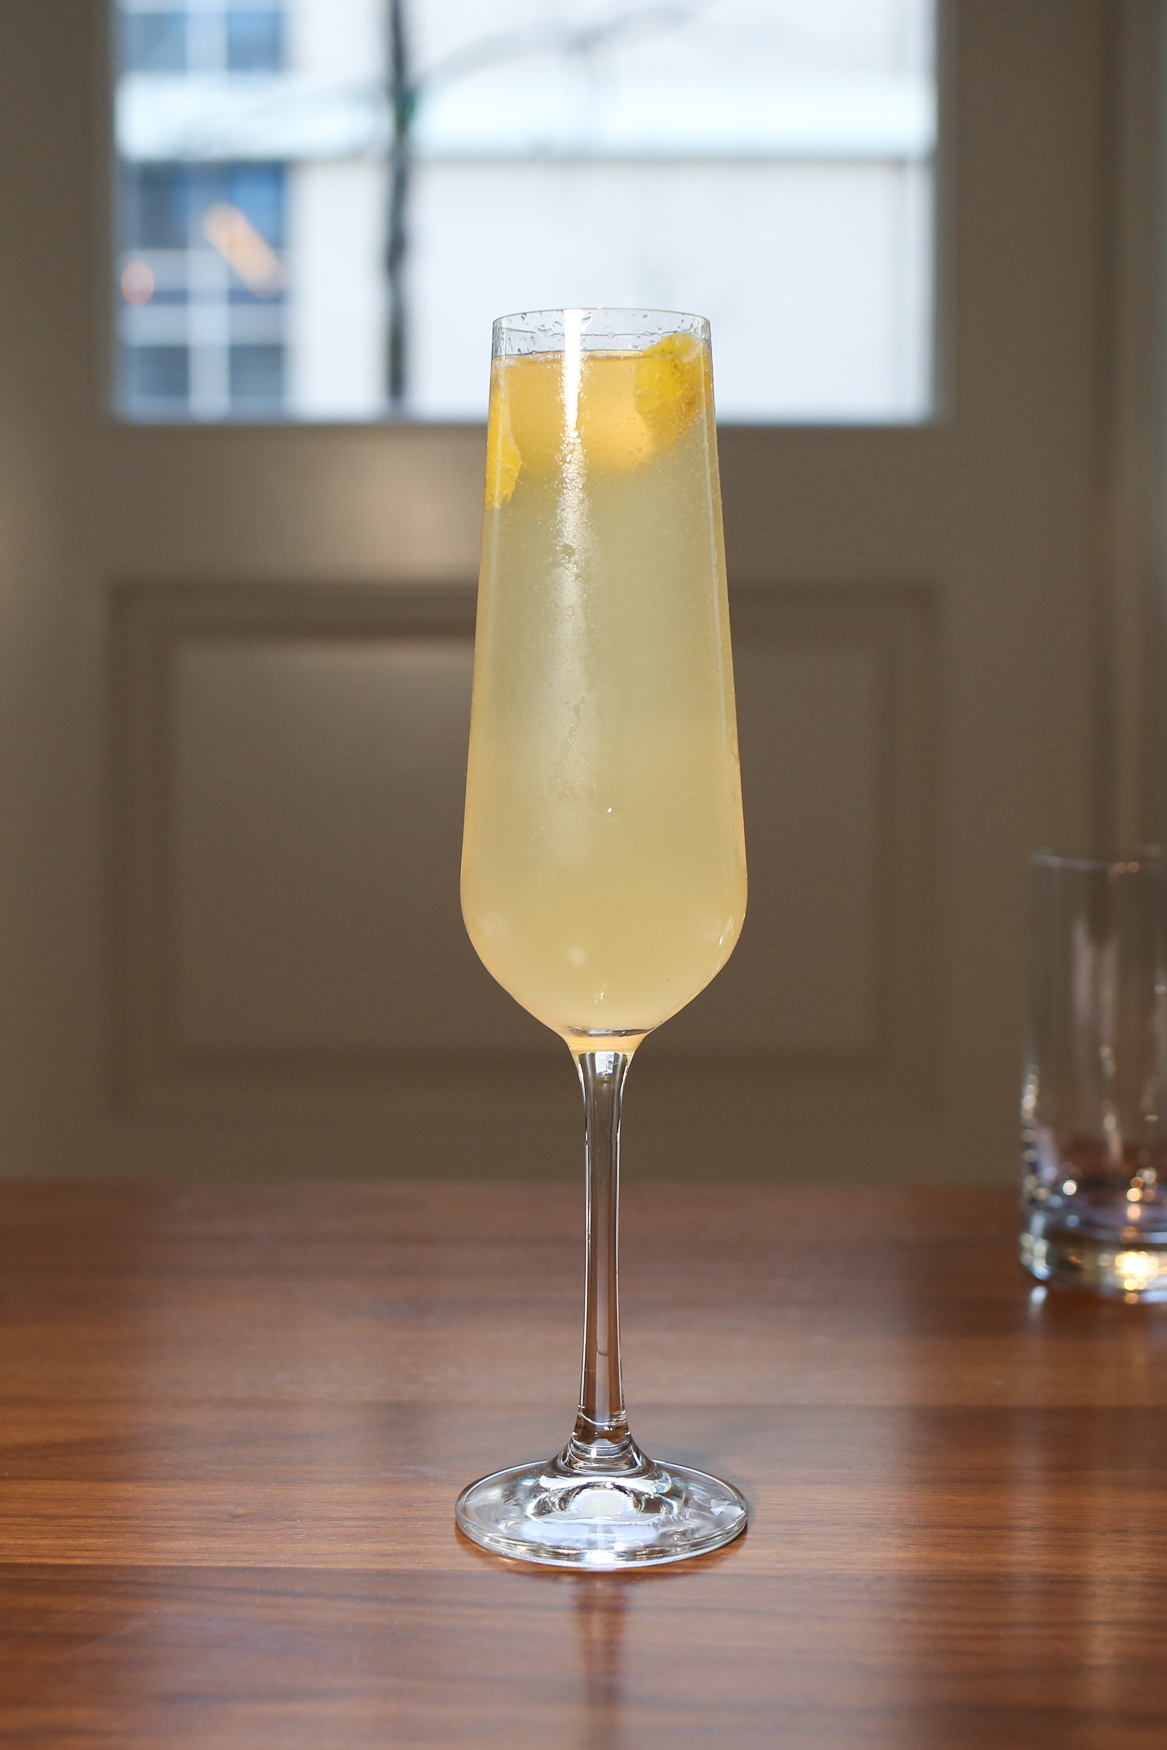 There are plenty of booze options for Restaurant Week, but the American 75 at The Delegate stood out for its effervescence and citrusy tang.{ }(Amanda Andrade-Rhoades/DC Refined)